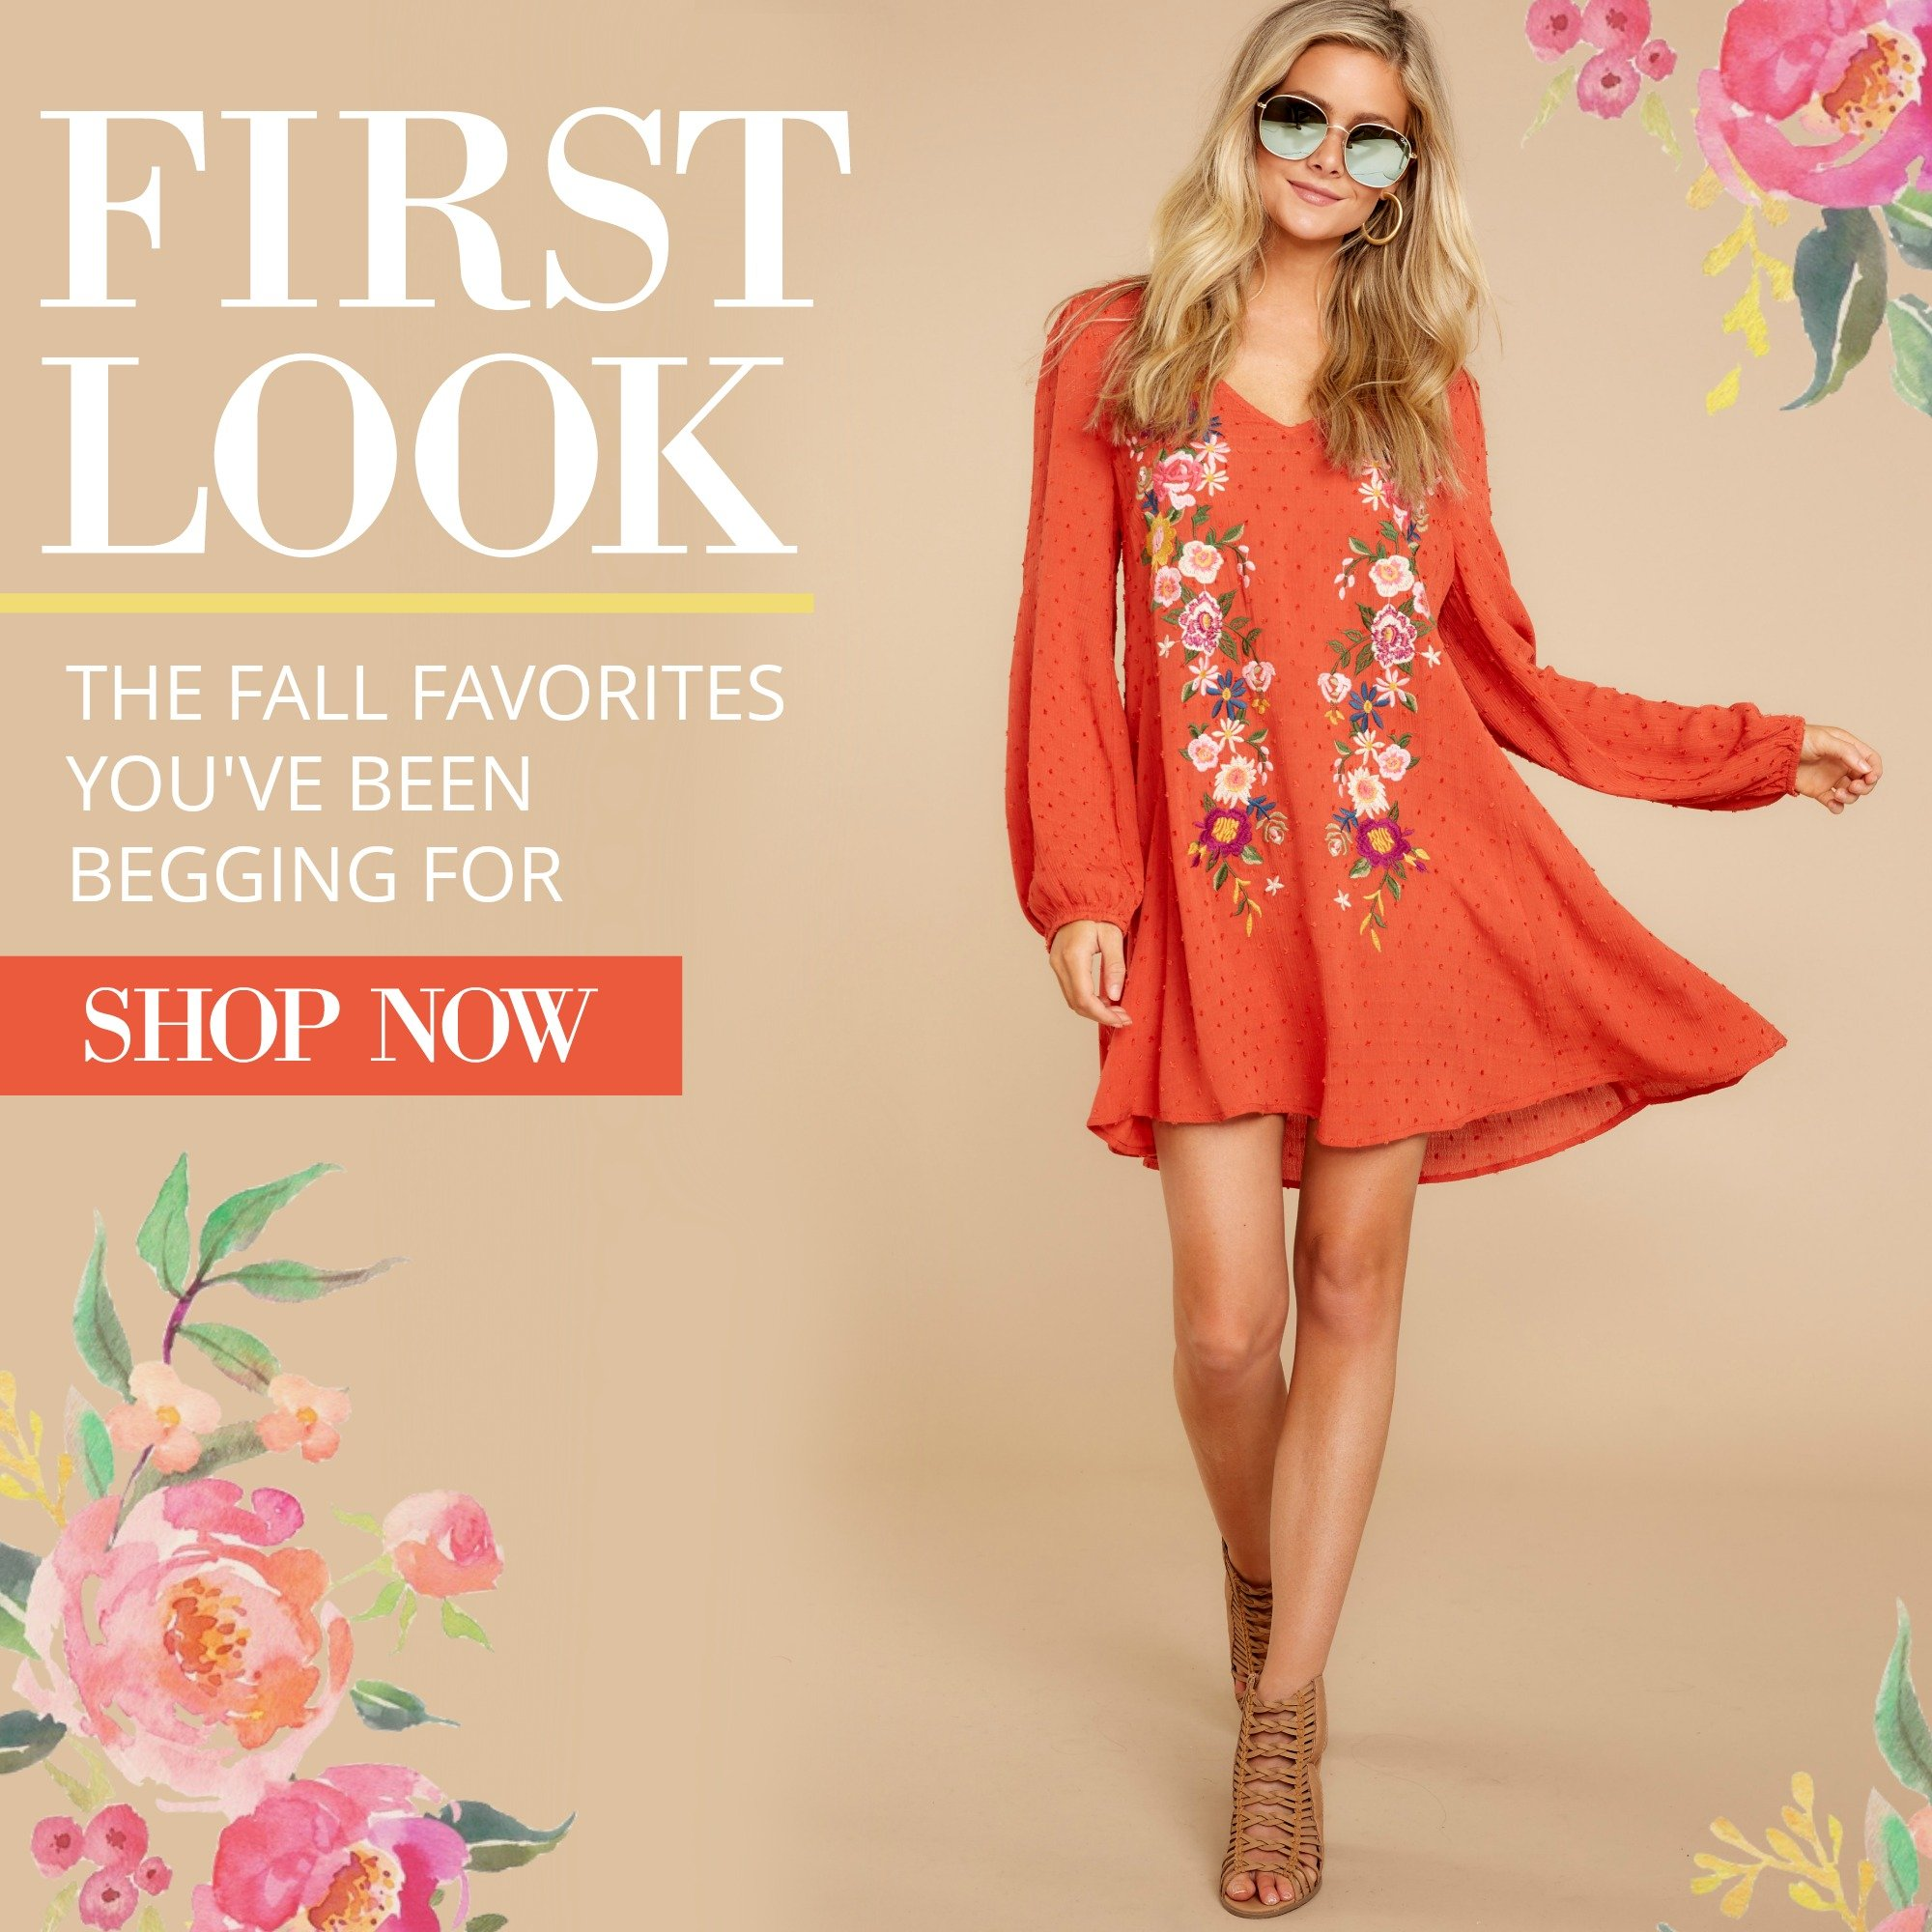 33c9f4ead65 You re the first to see this... - Red Dress Boutique Email Archive